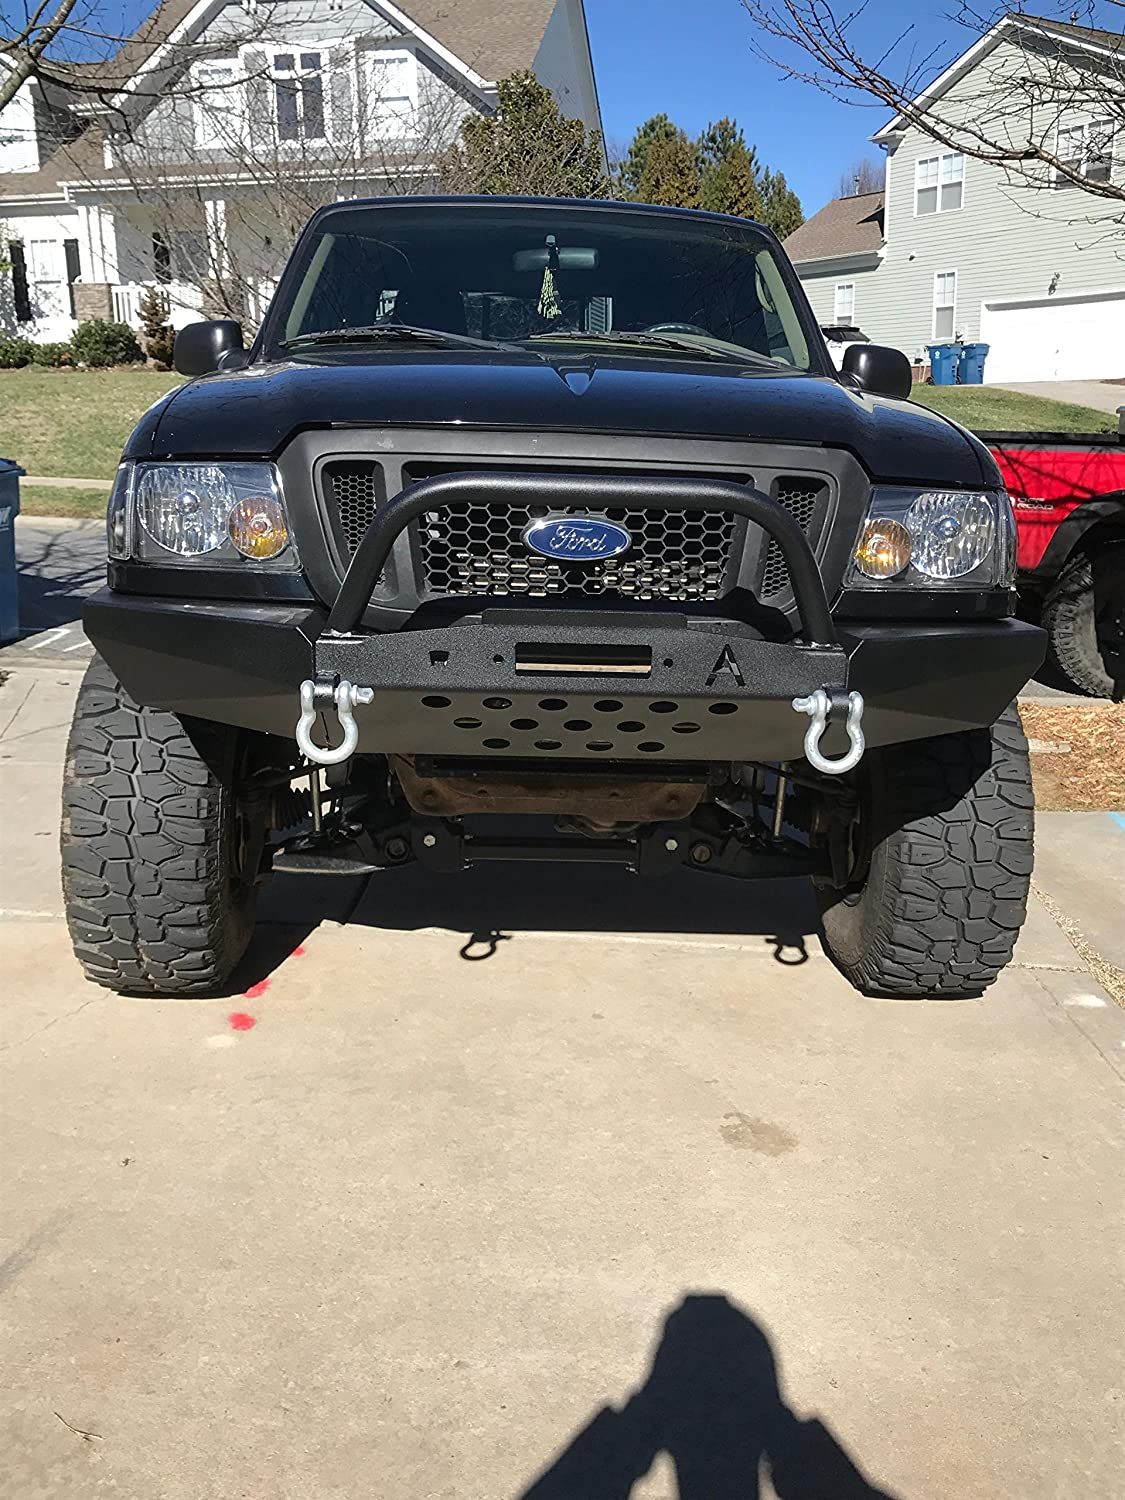 Modular Front Bumper With Bull Bar For 98 11 Ford Ranger